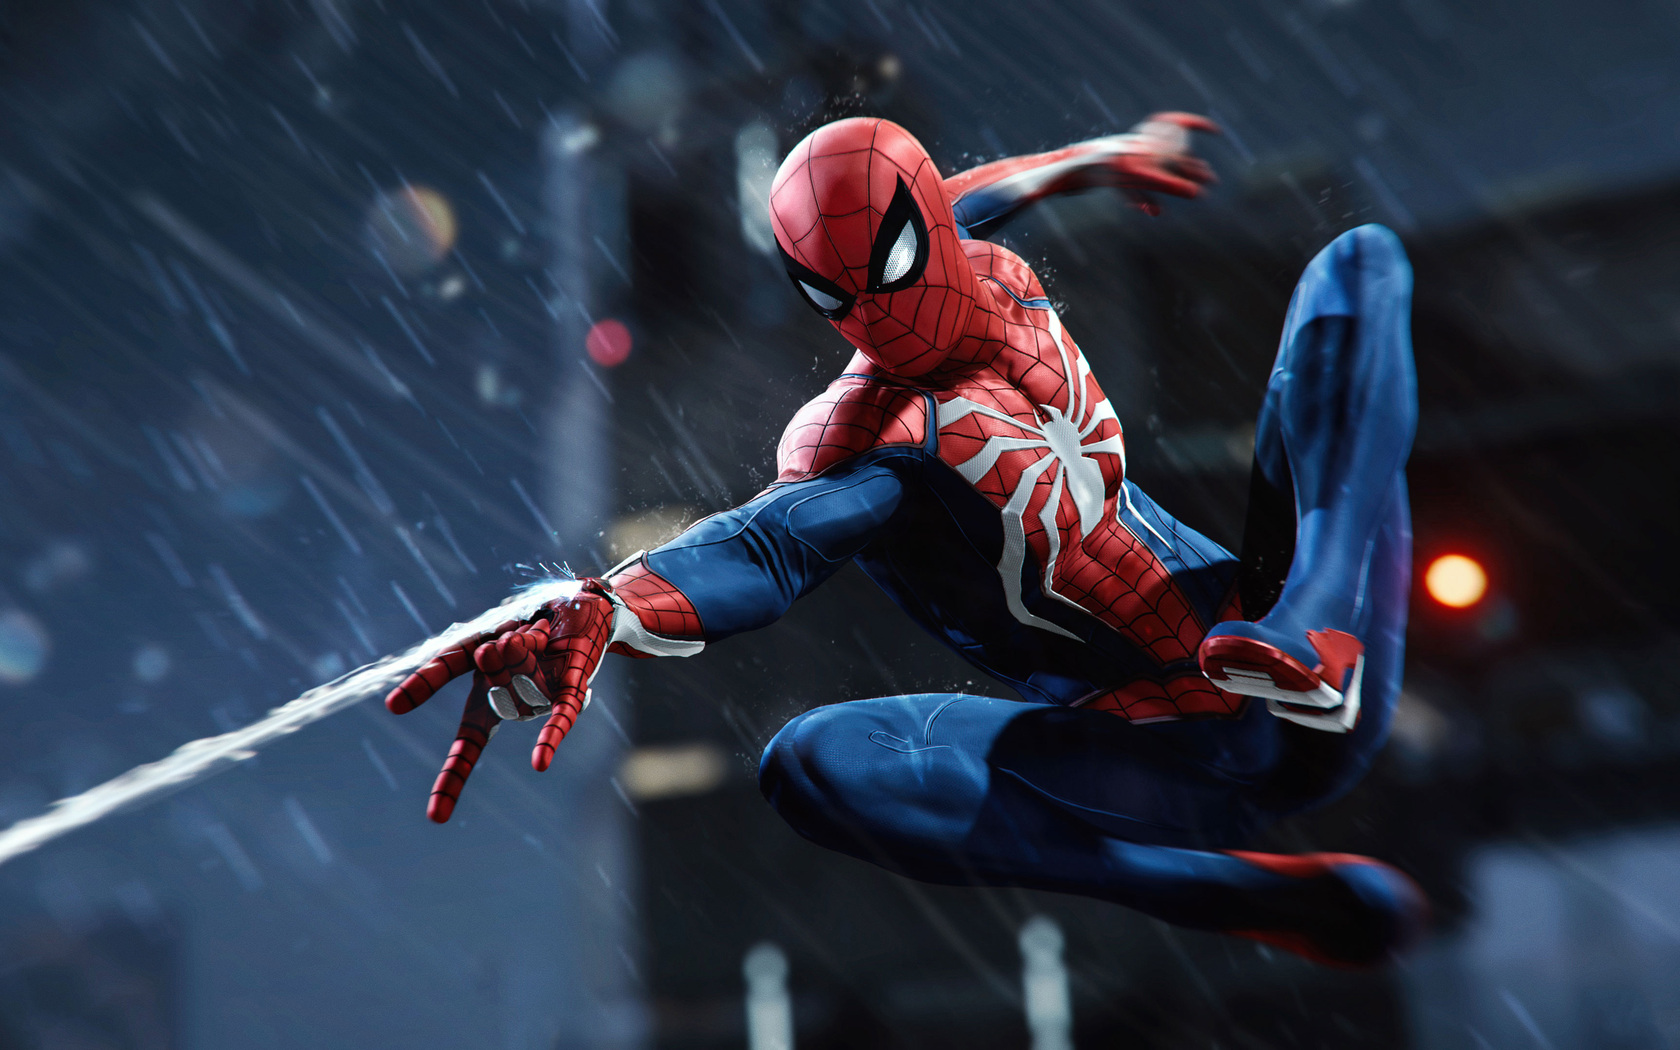 spiderman-ps4-2018-e3-5q.jpg